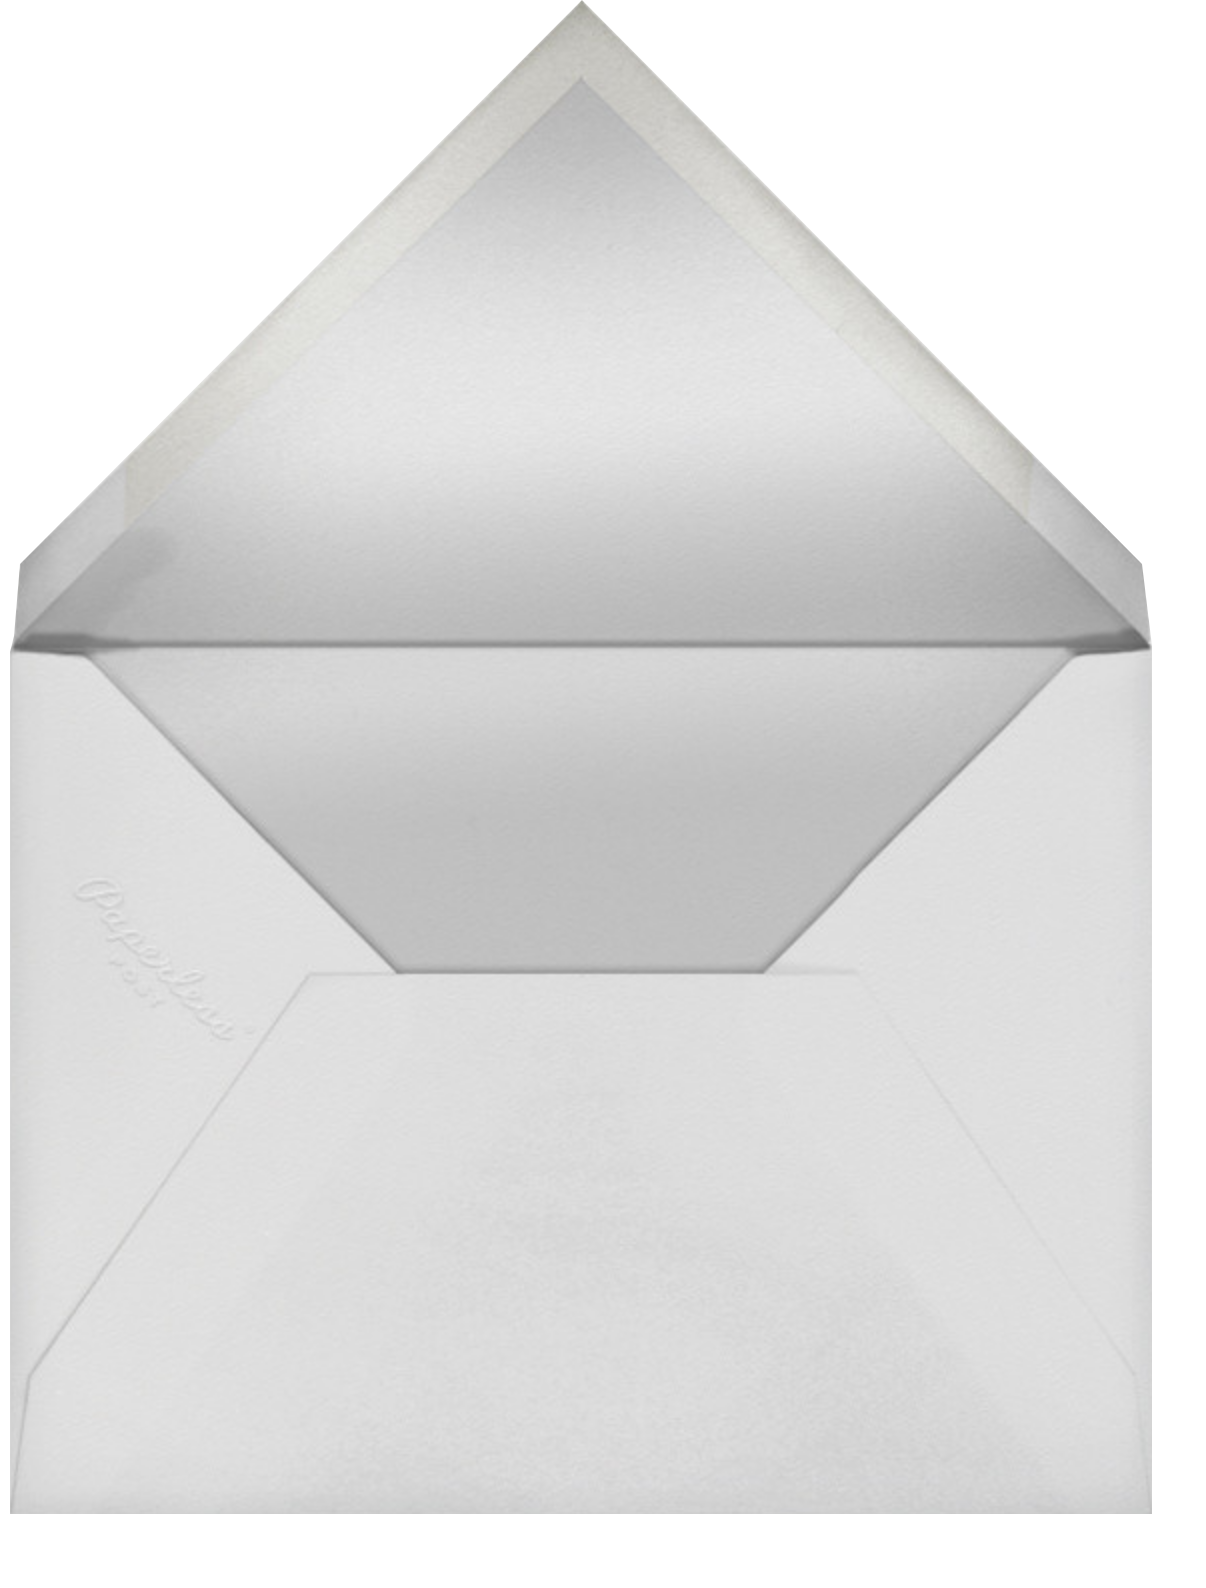 Heavy Scale - Love - Paperless Post - Just because - envelope back